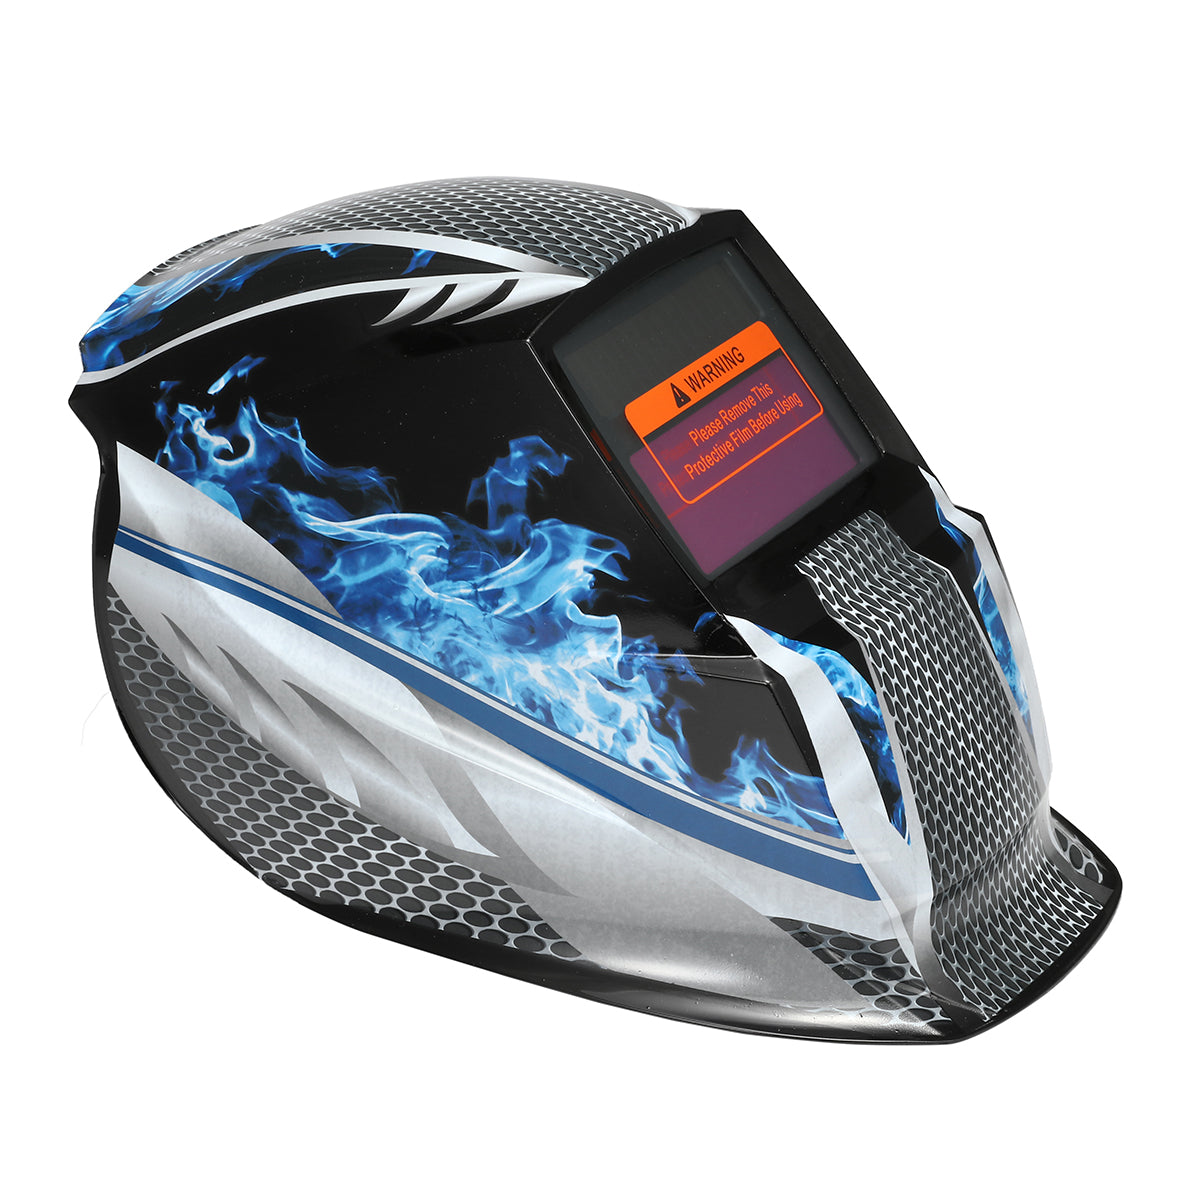 Solar Auto Darkening Welding Helmet Welder Mask Grind Protective Shield - Red Hot Exclusive